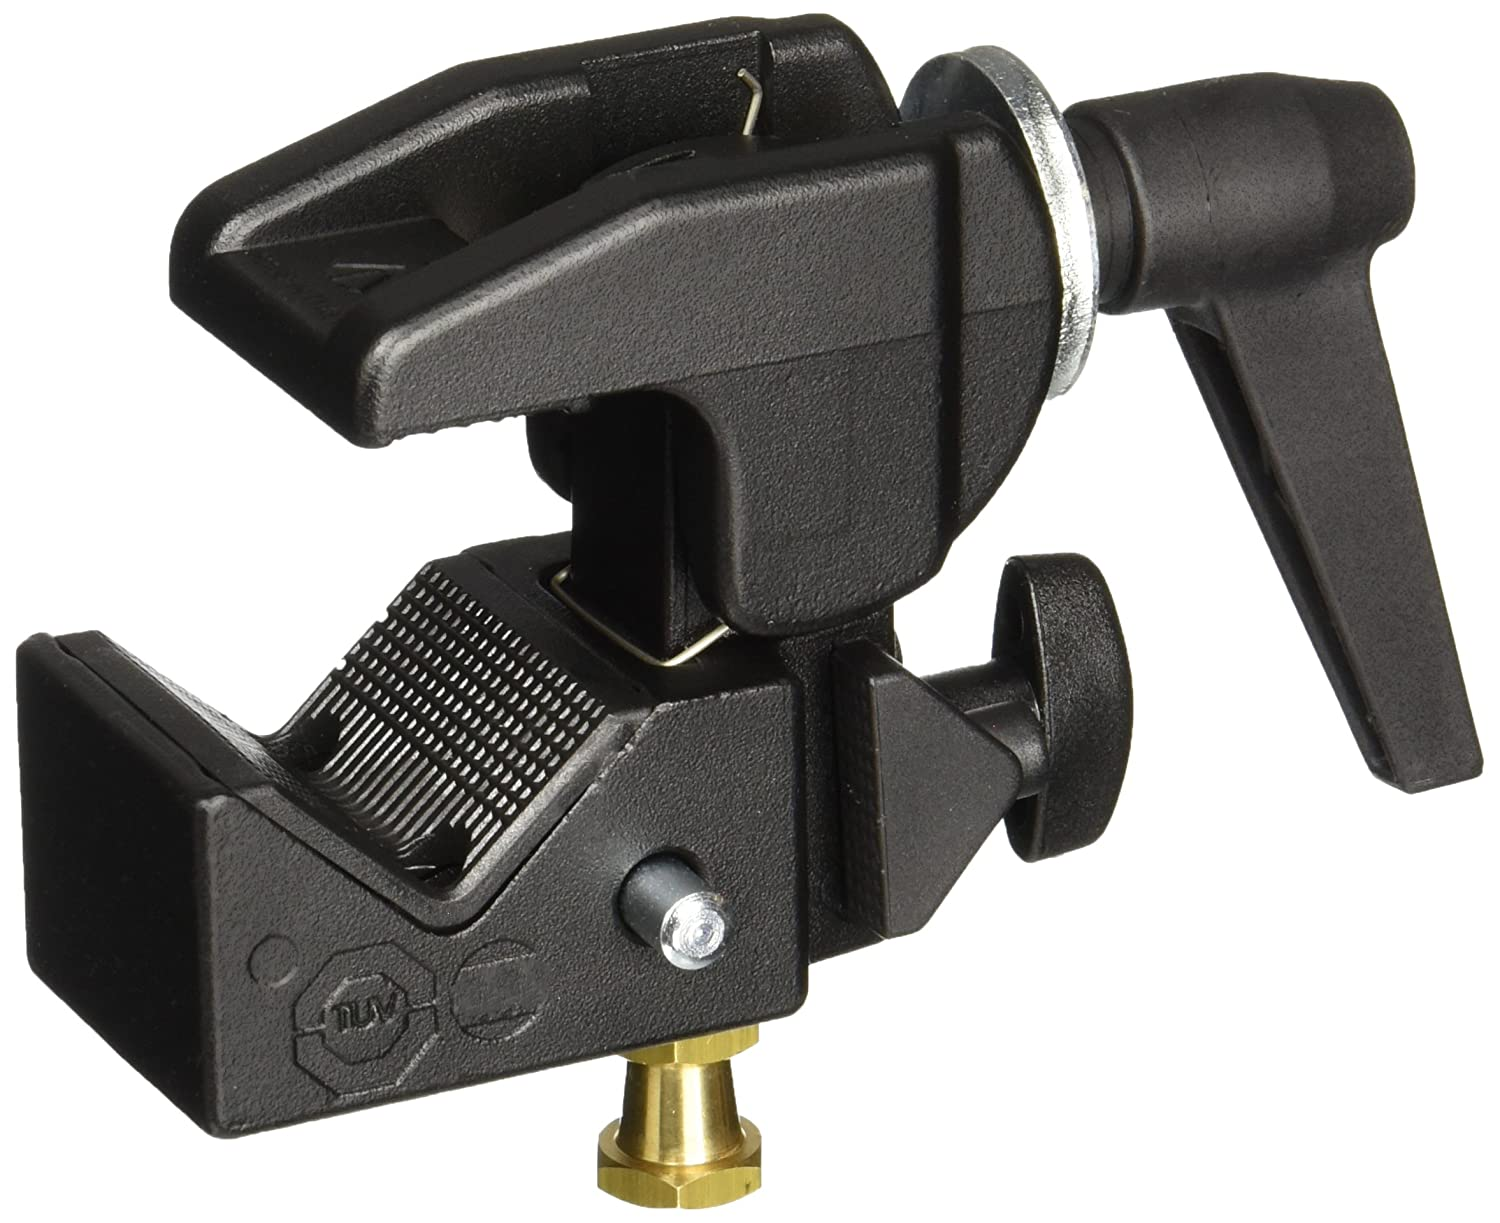 Manfrotto 035RL Super Clamp with 2908 Standard Stud - Replaces 2900 - Black BG2900